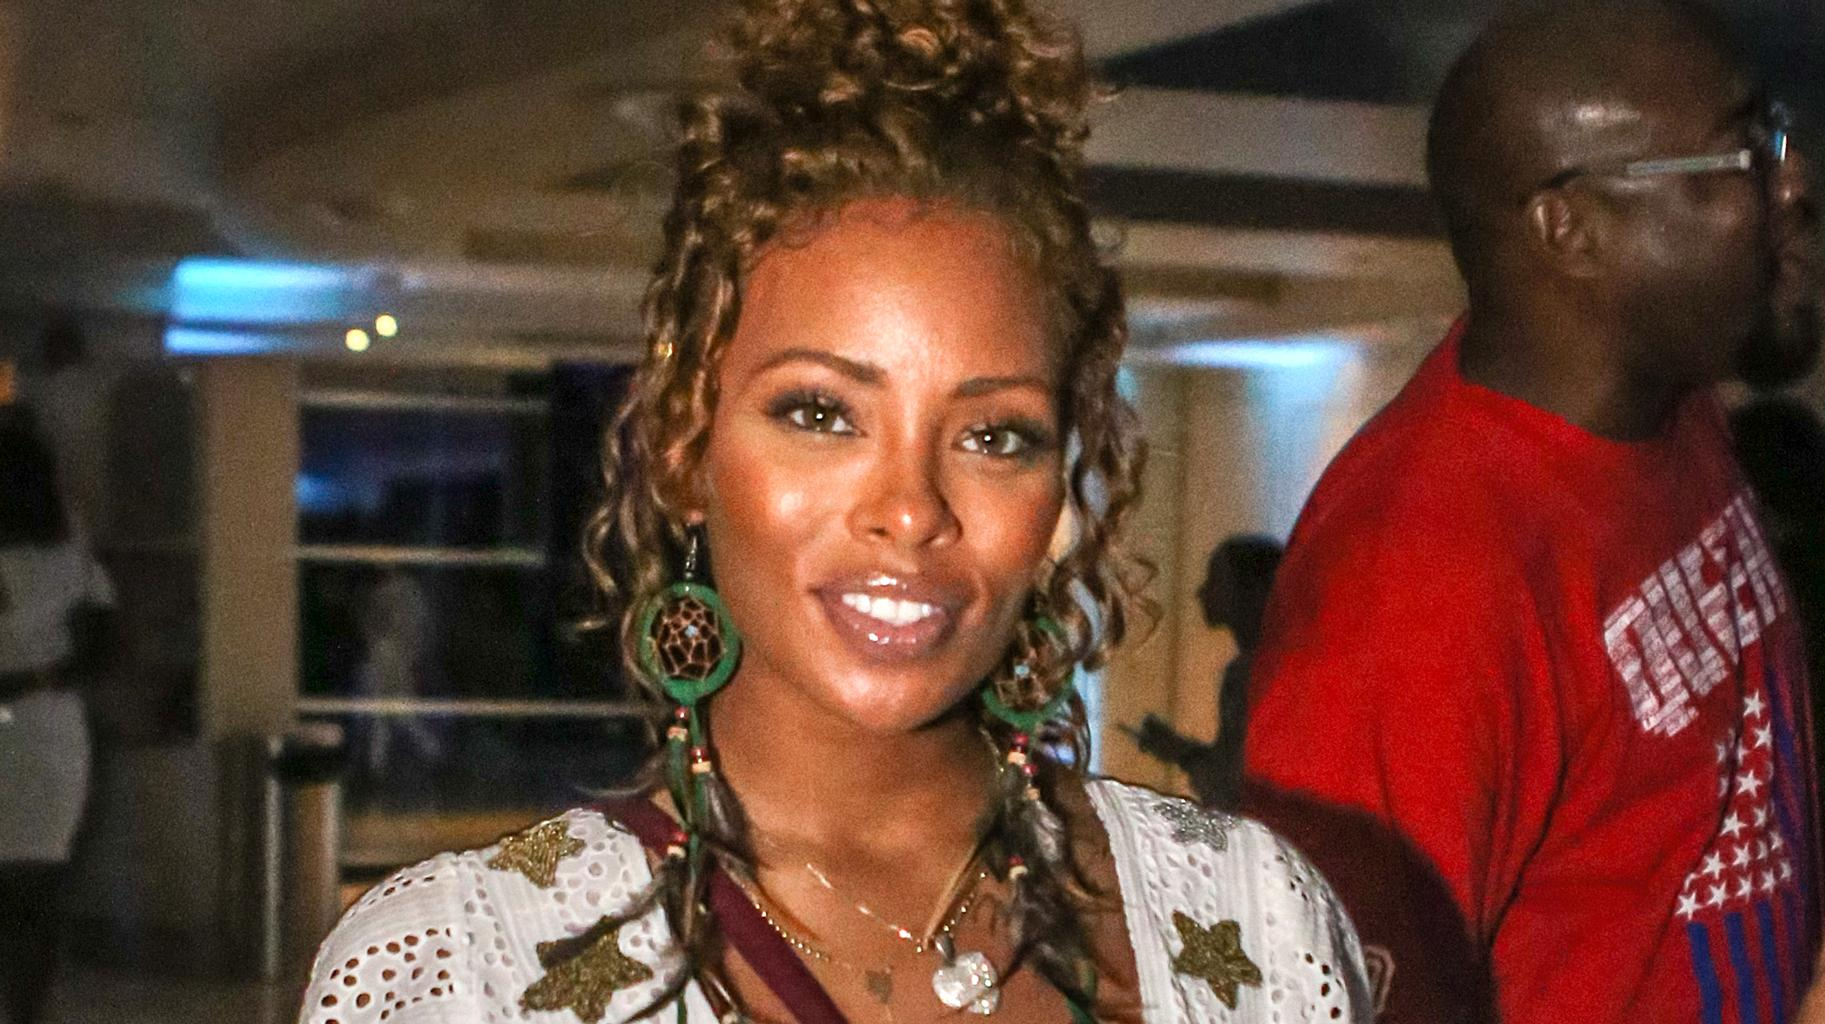 Eva Marcille Breaks Down While Discussing Kevin McCall During RHOA Reunion